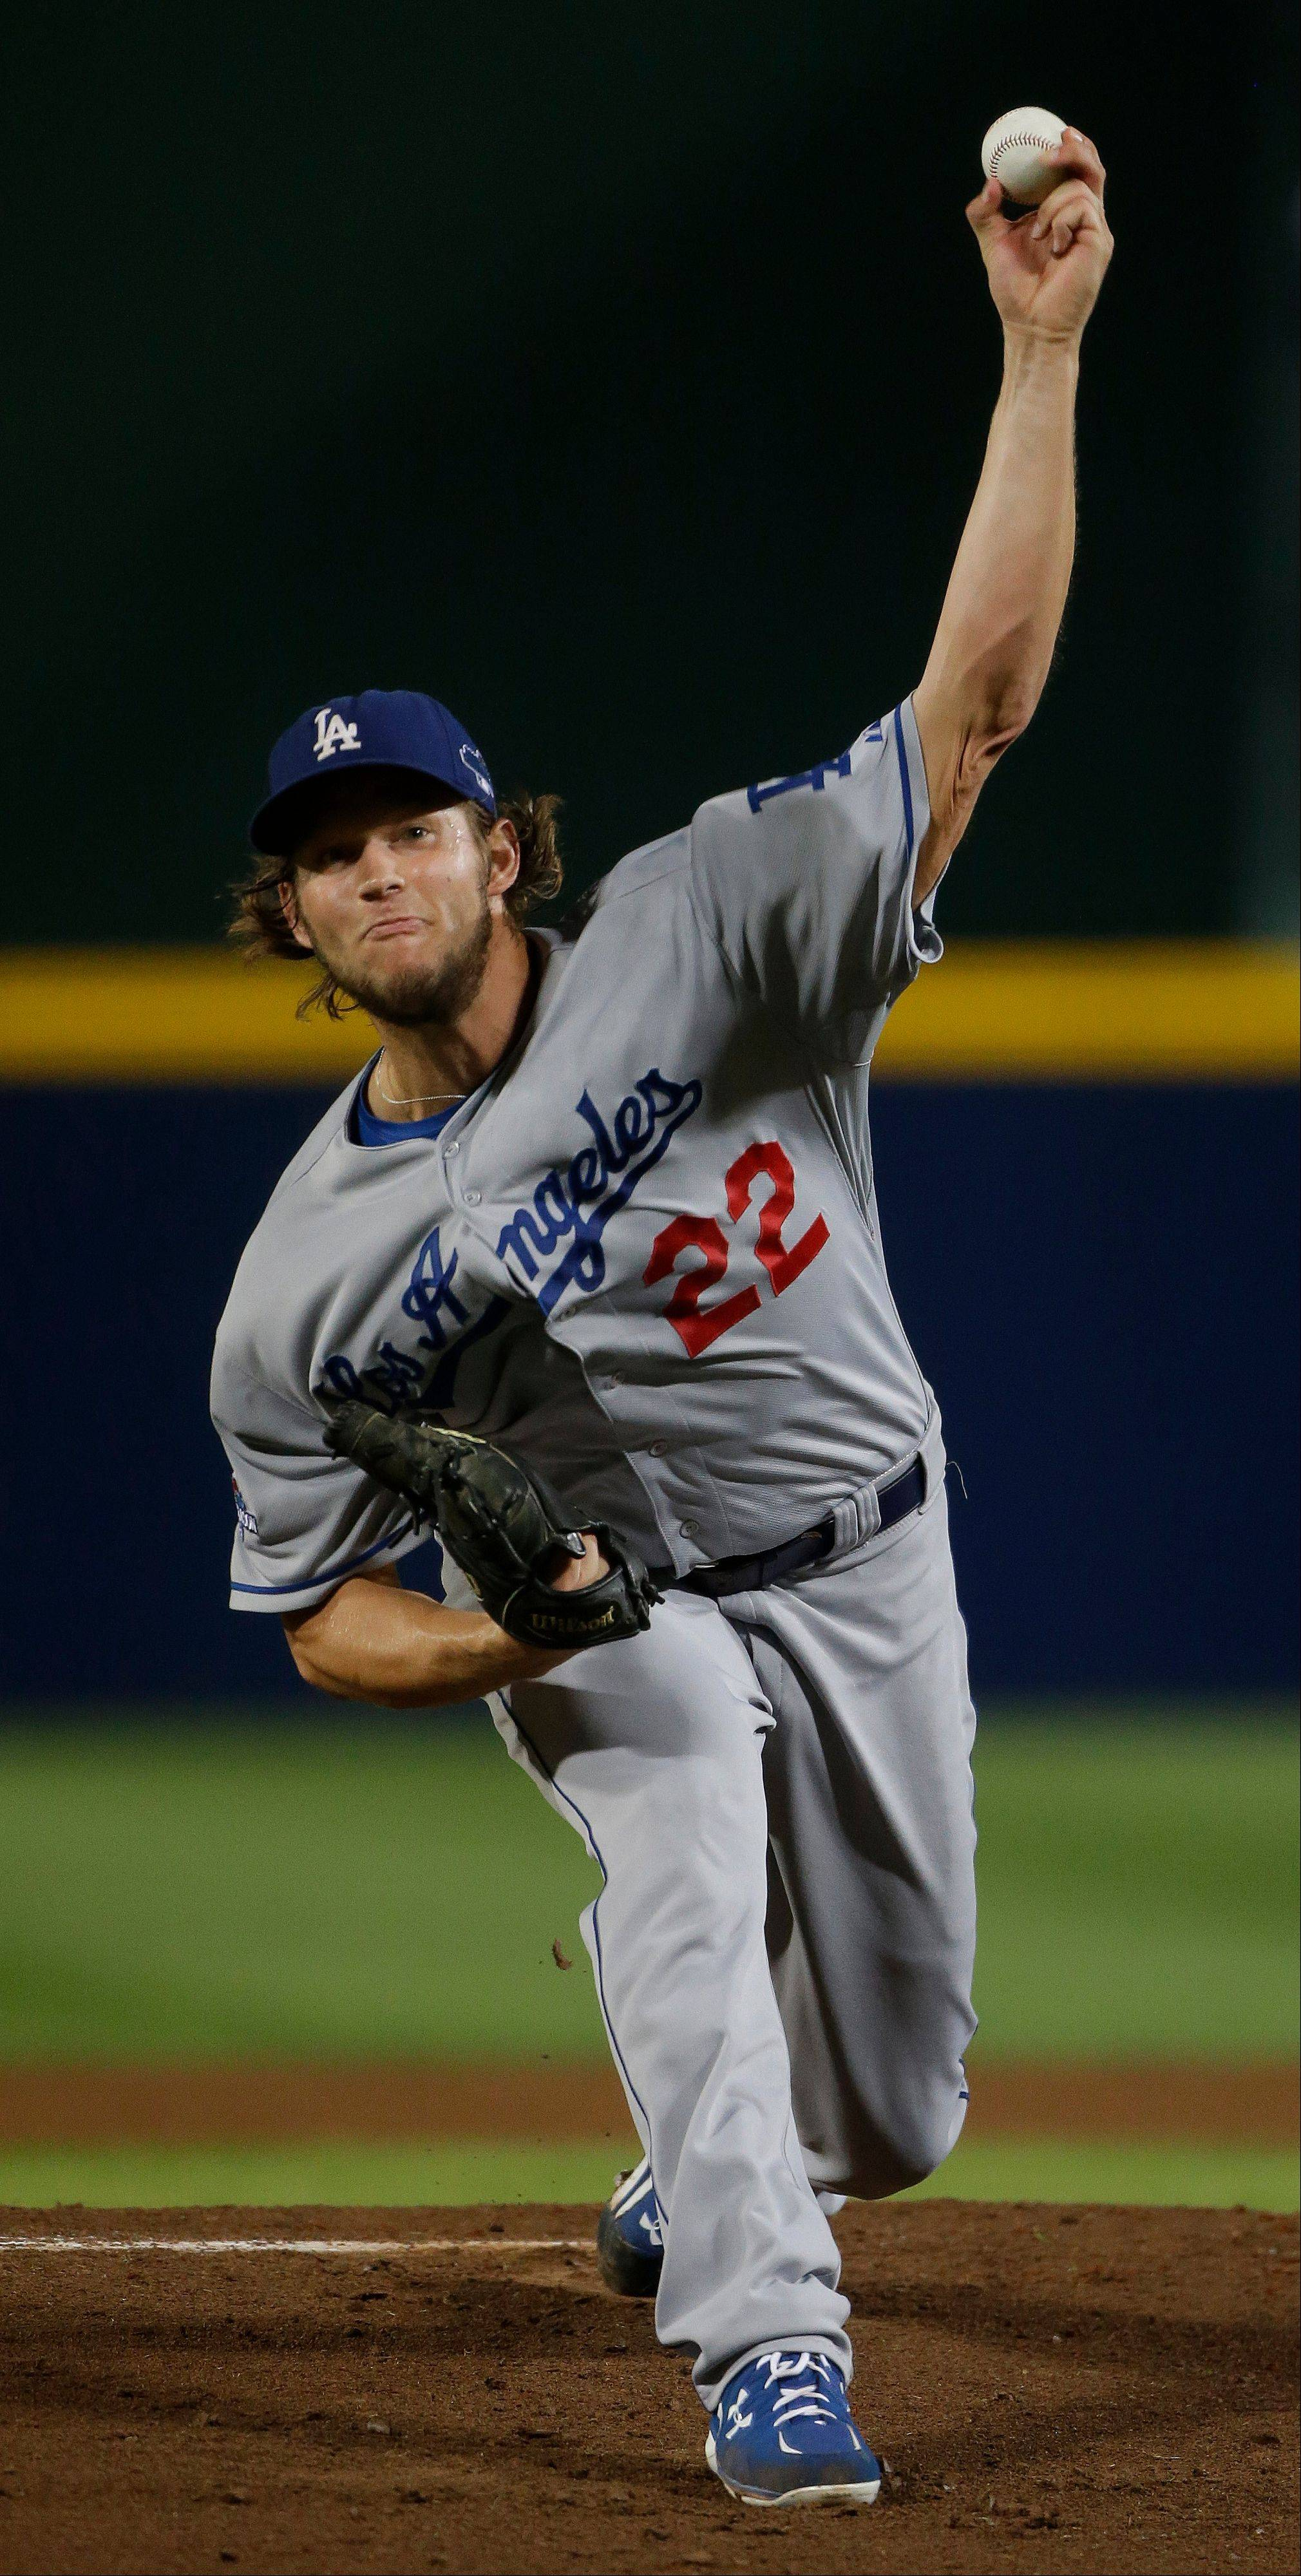 Kershaw replaces Nolasco as L.A.'s Game 4 starter